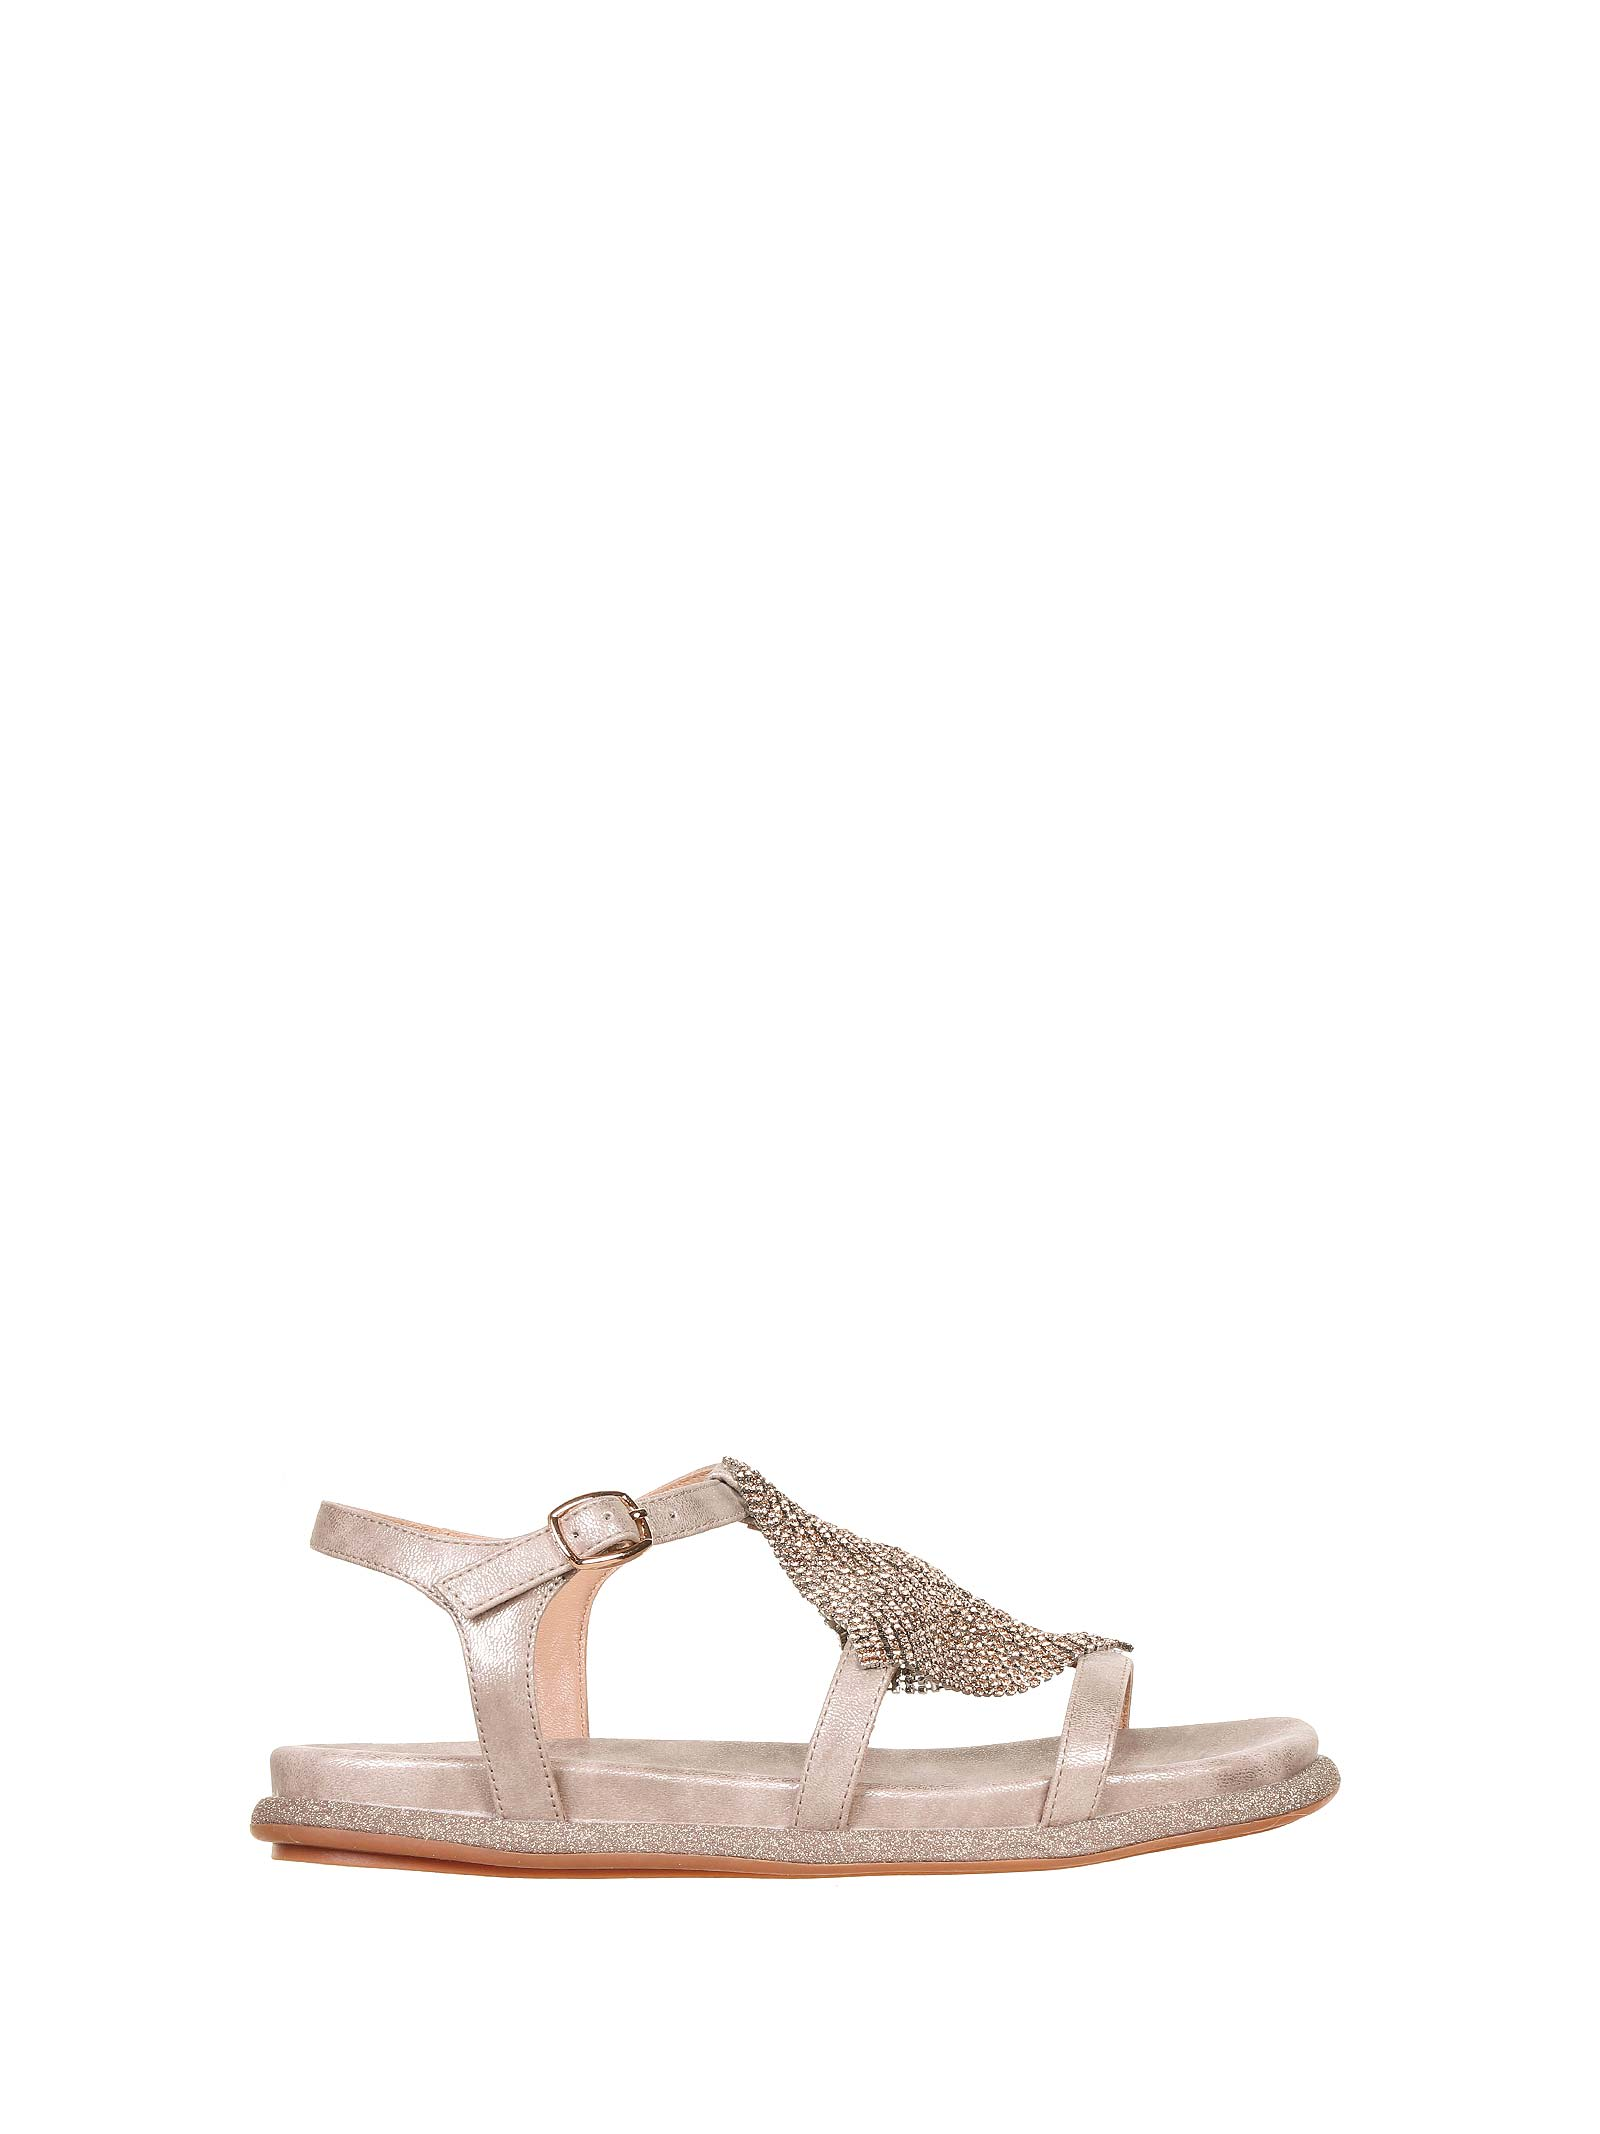 Sandals With Strass